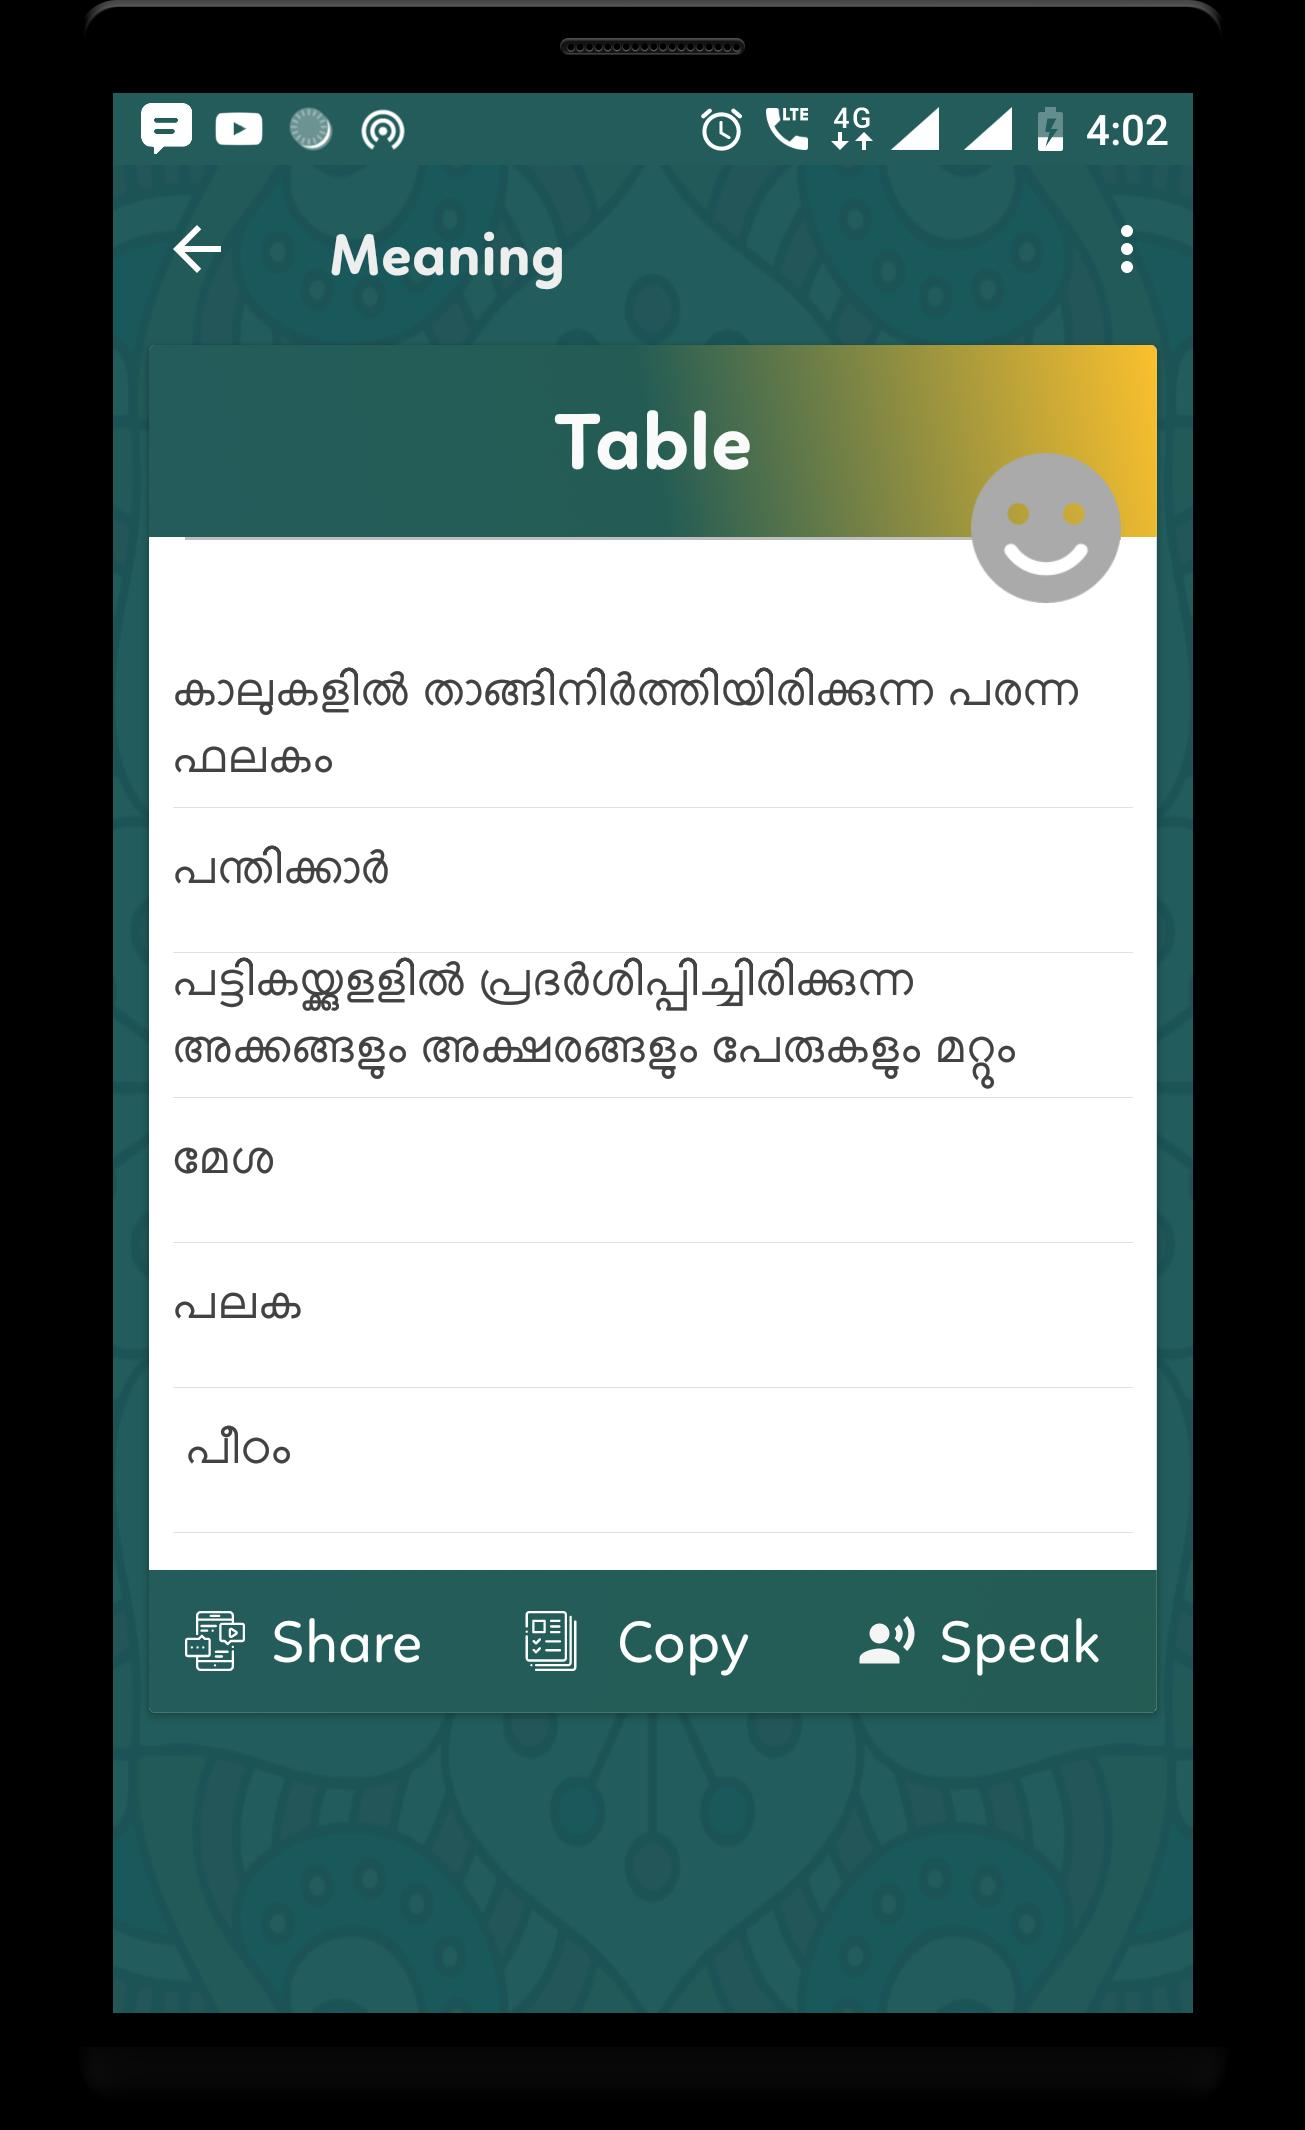 Returns malayalam meaning